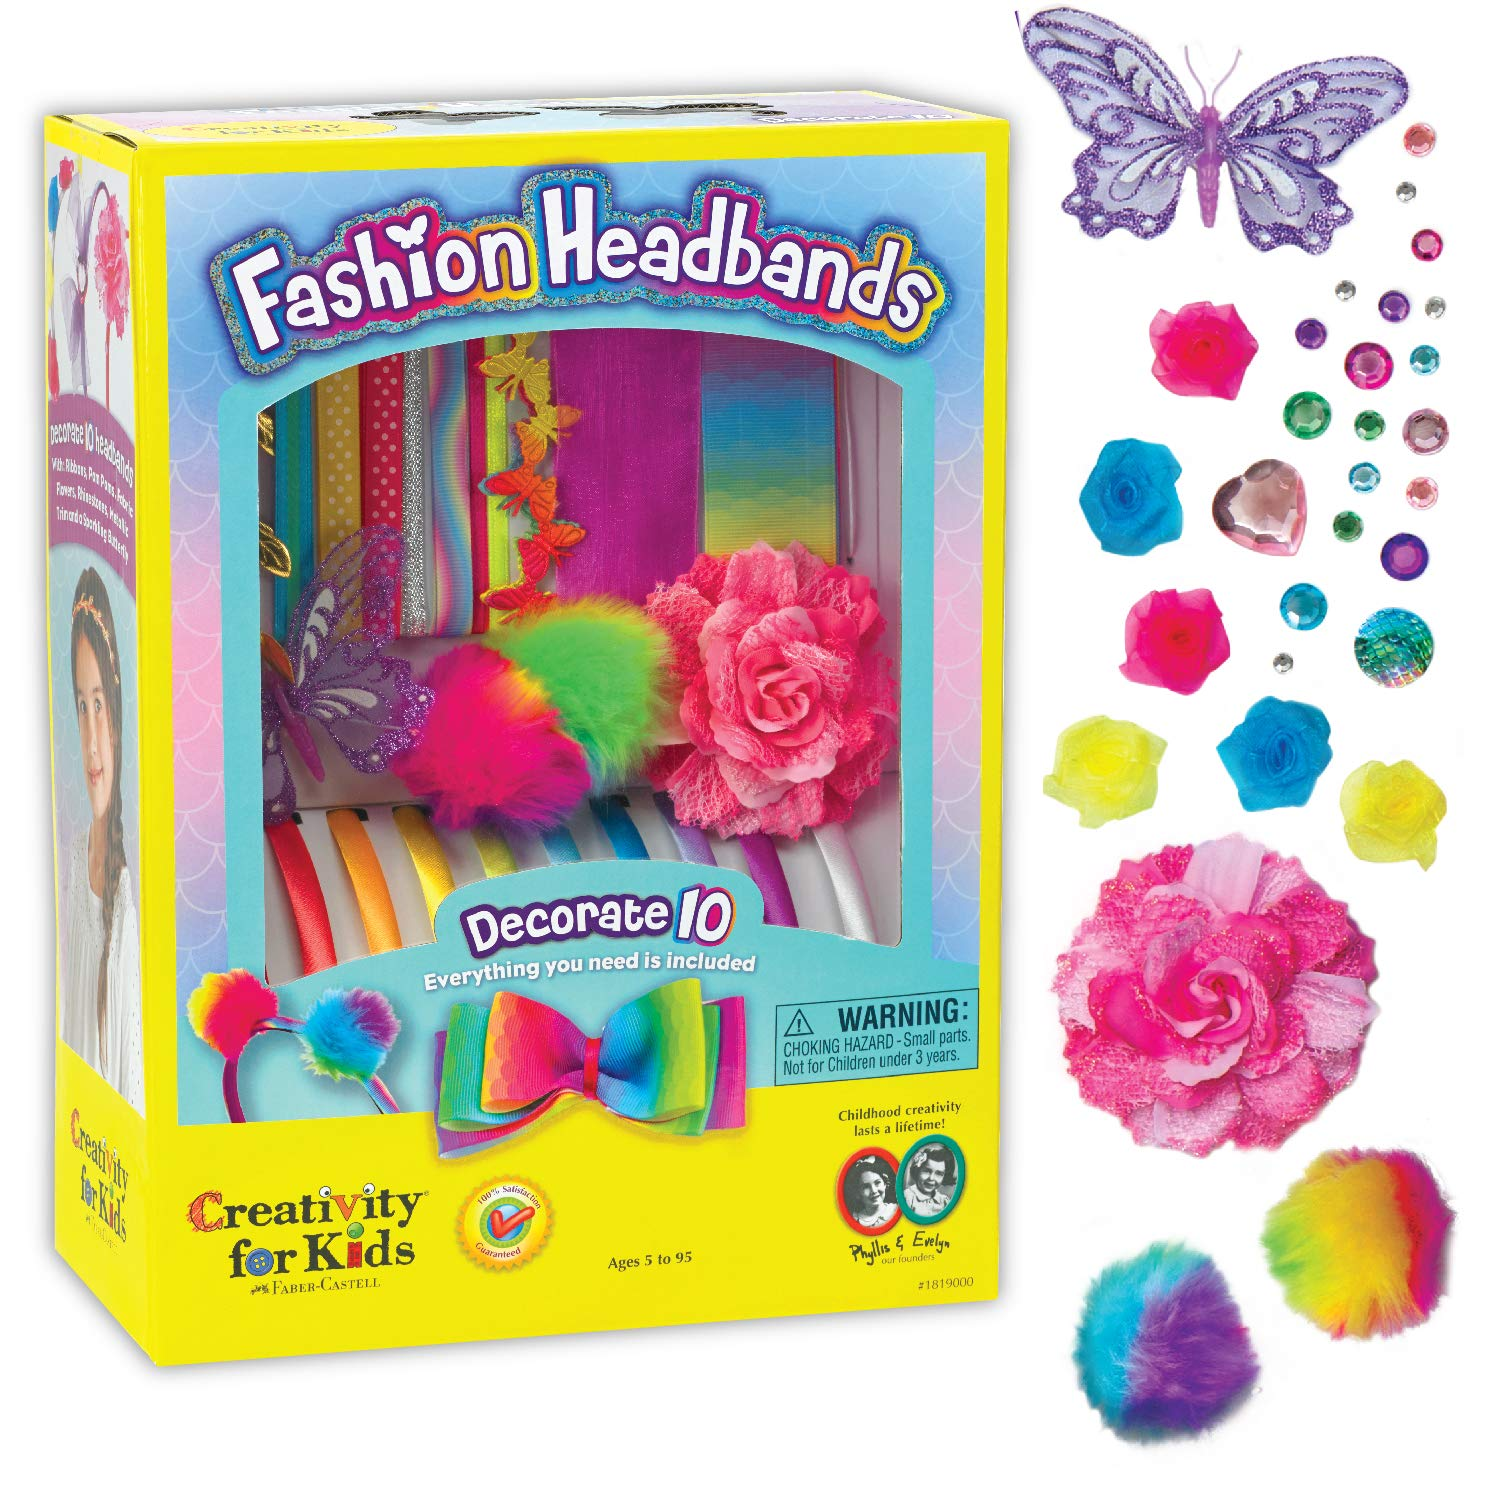 Creativity for Kids Fashion Headbands Craft Kit, Makes 10 Unique Hair Accessories (Packaging May Vary)